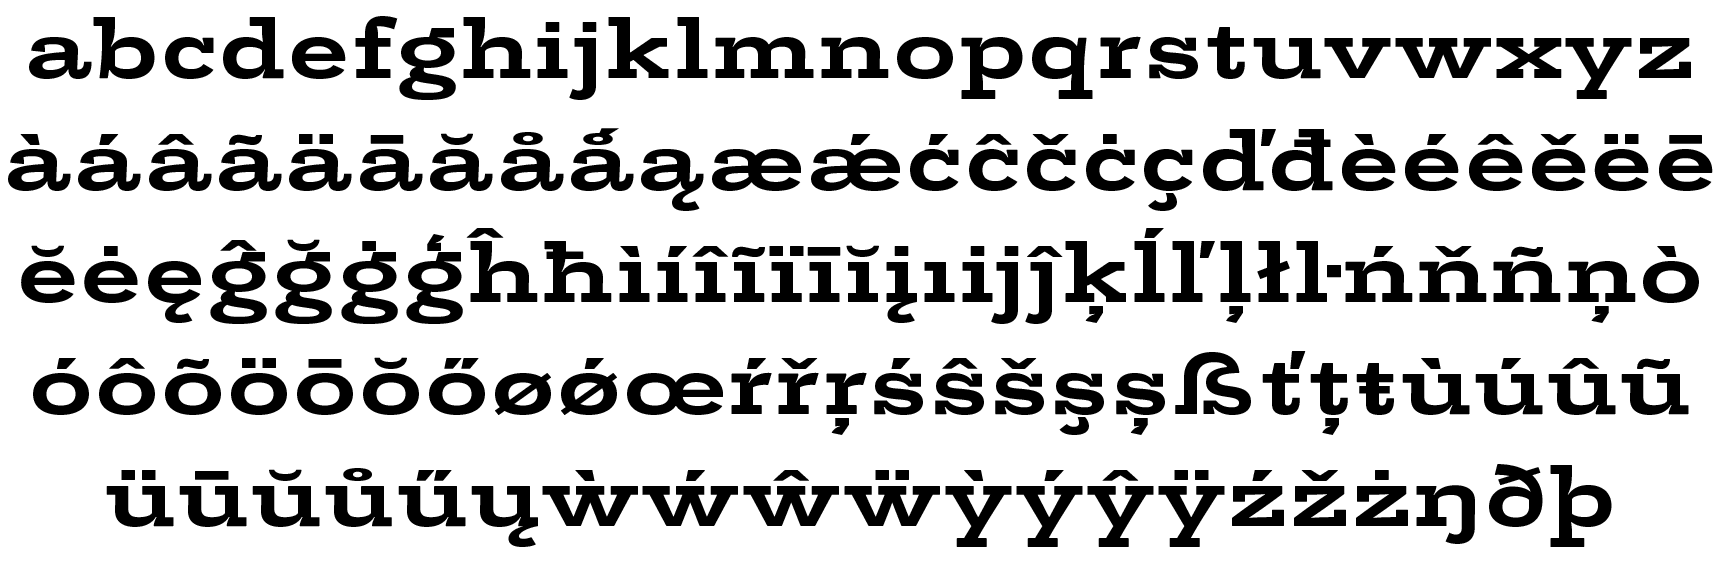 <p>Lowercase</p> glyphs